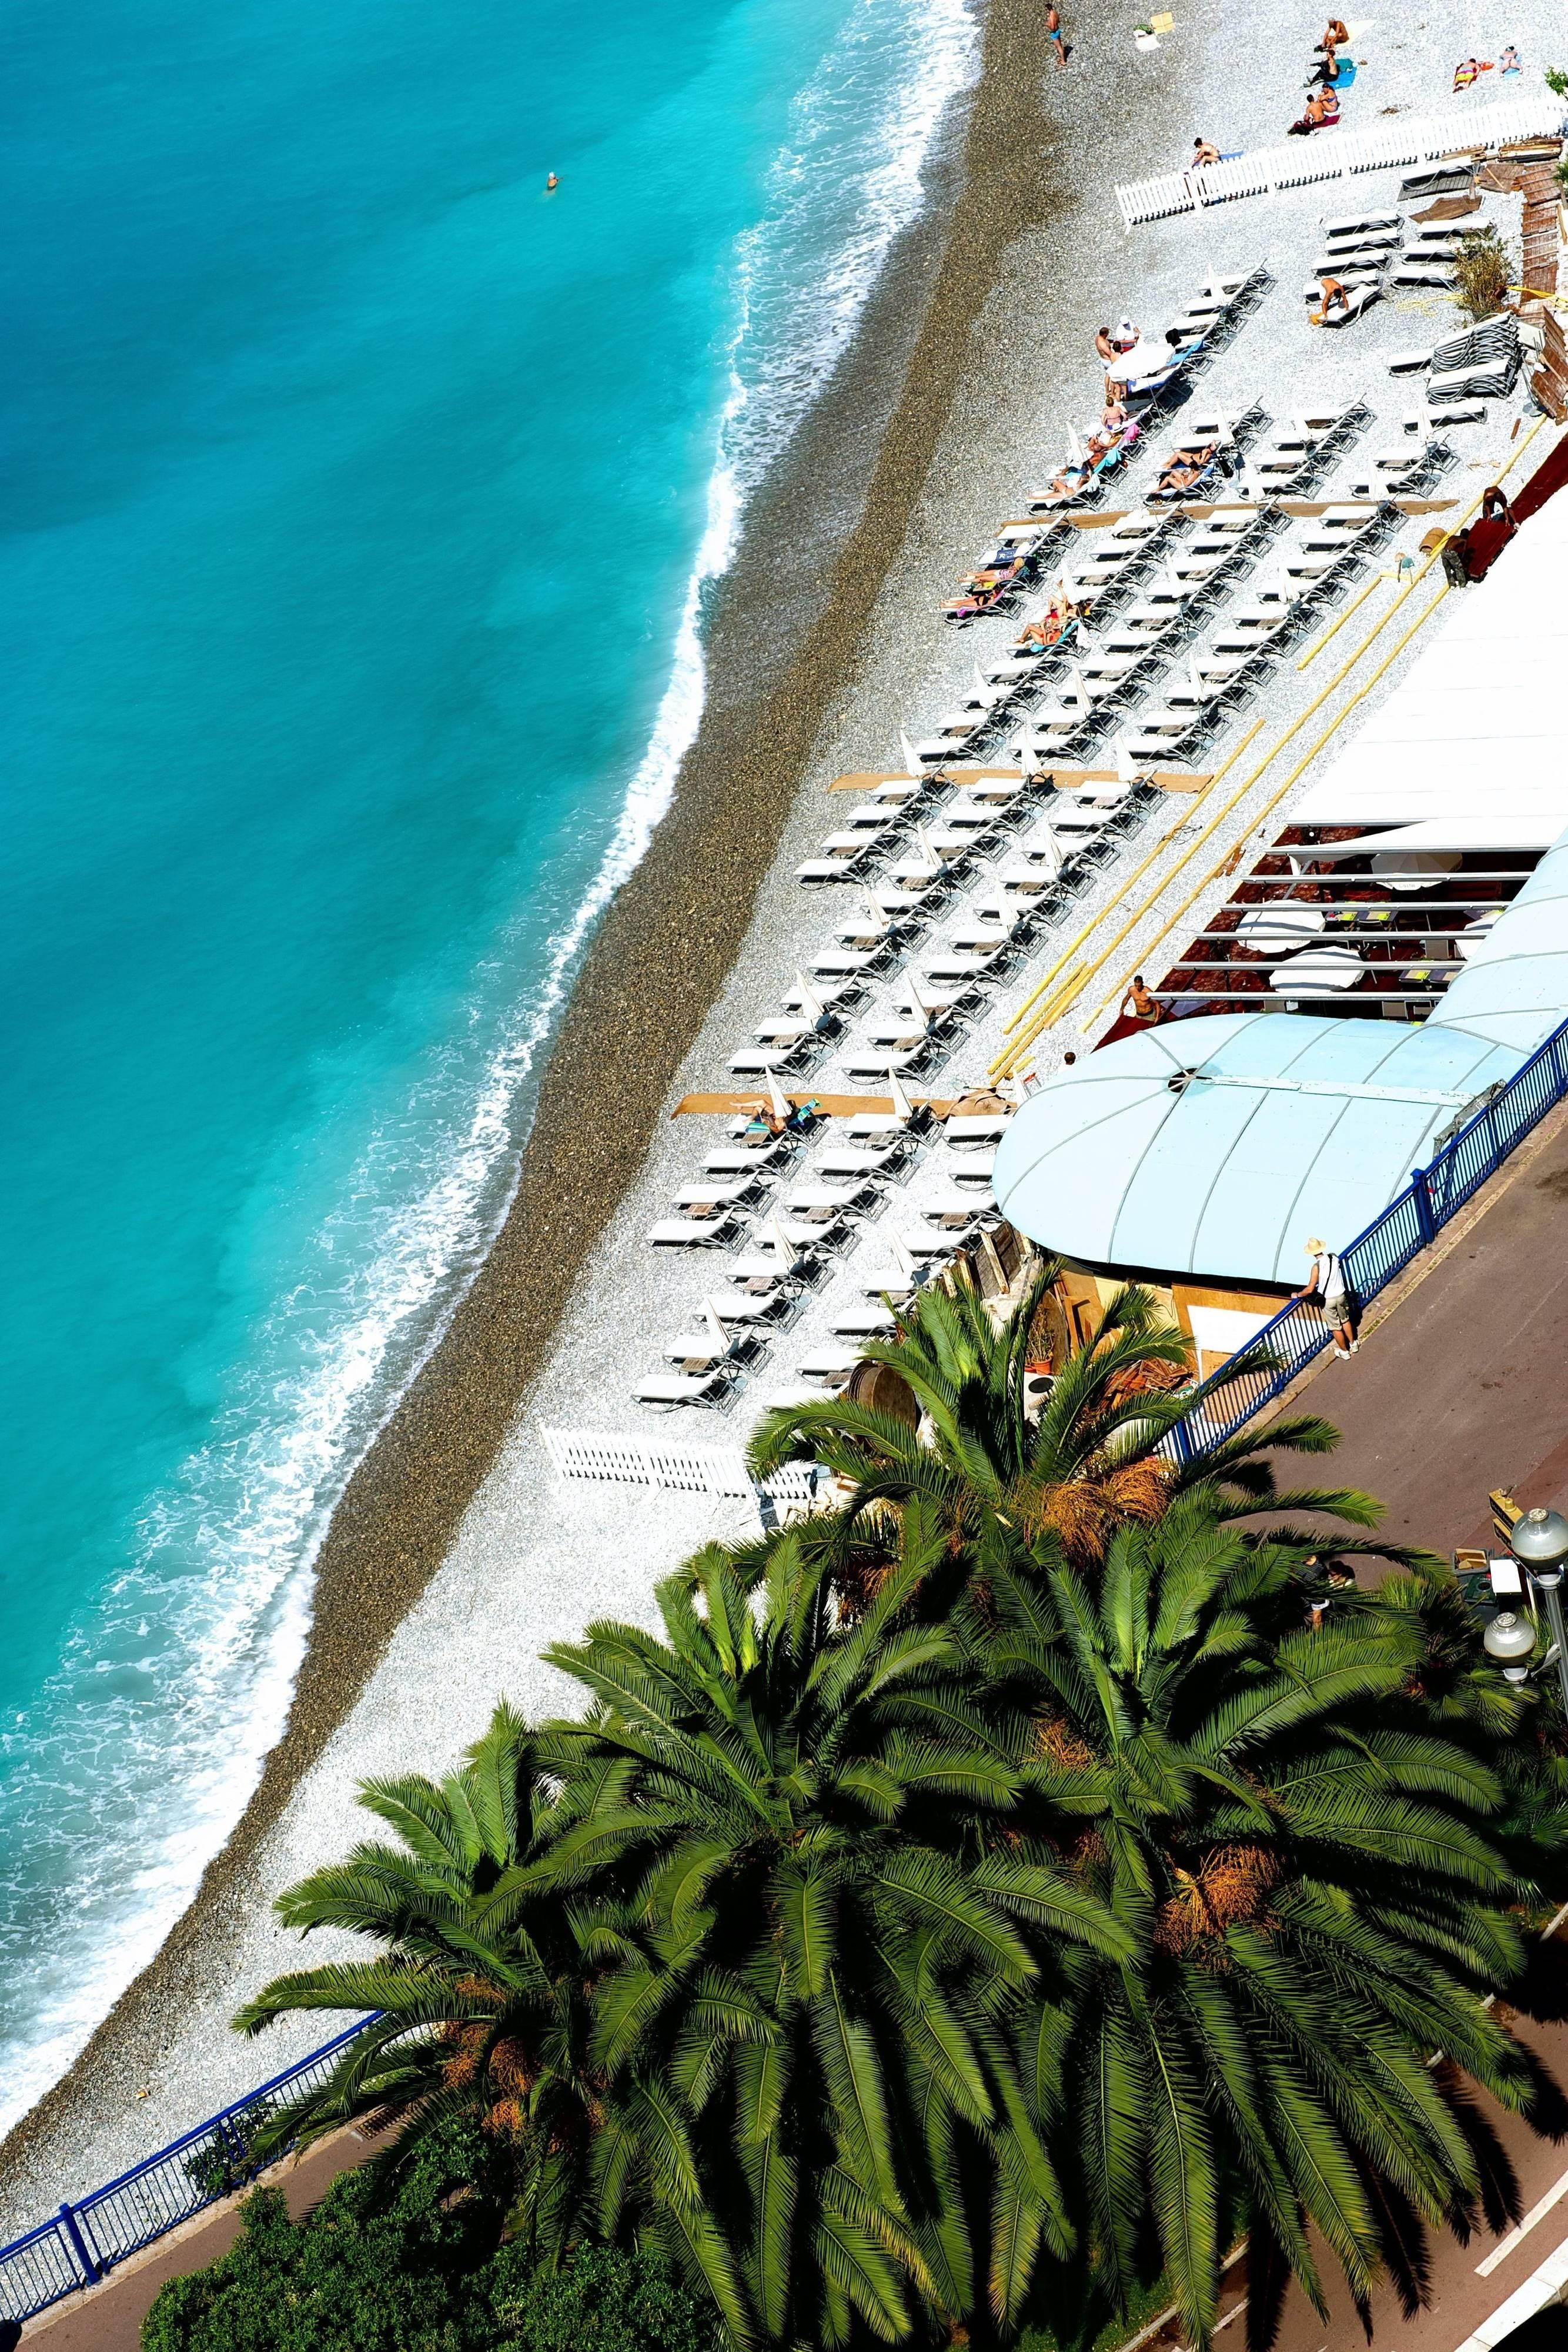 Hotels on Promenade des Anglais